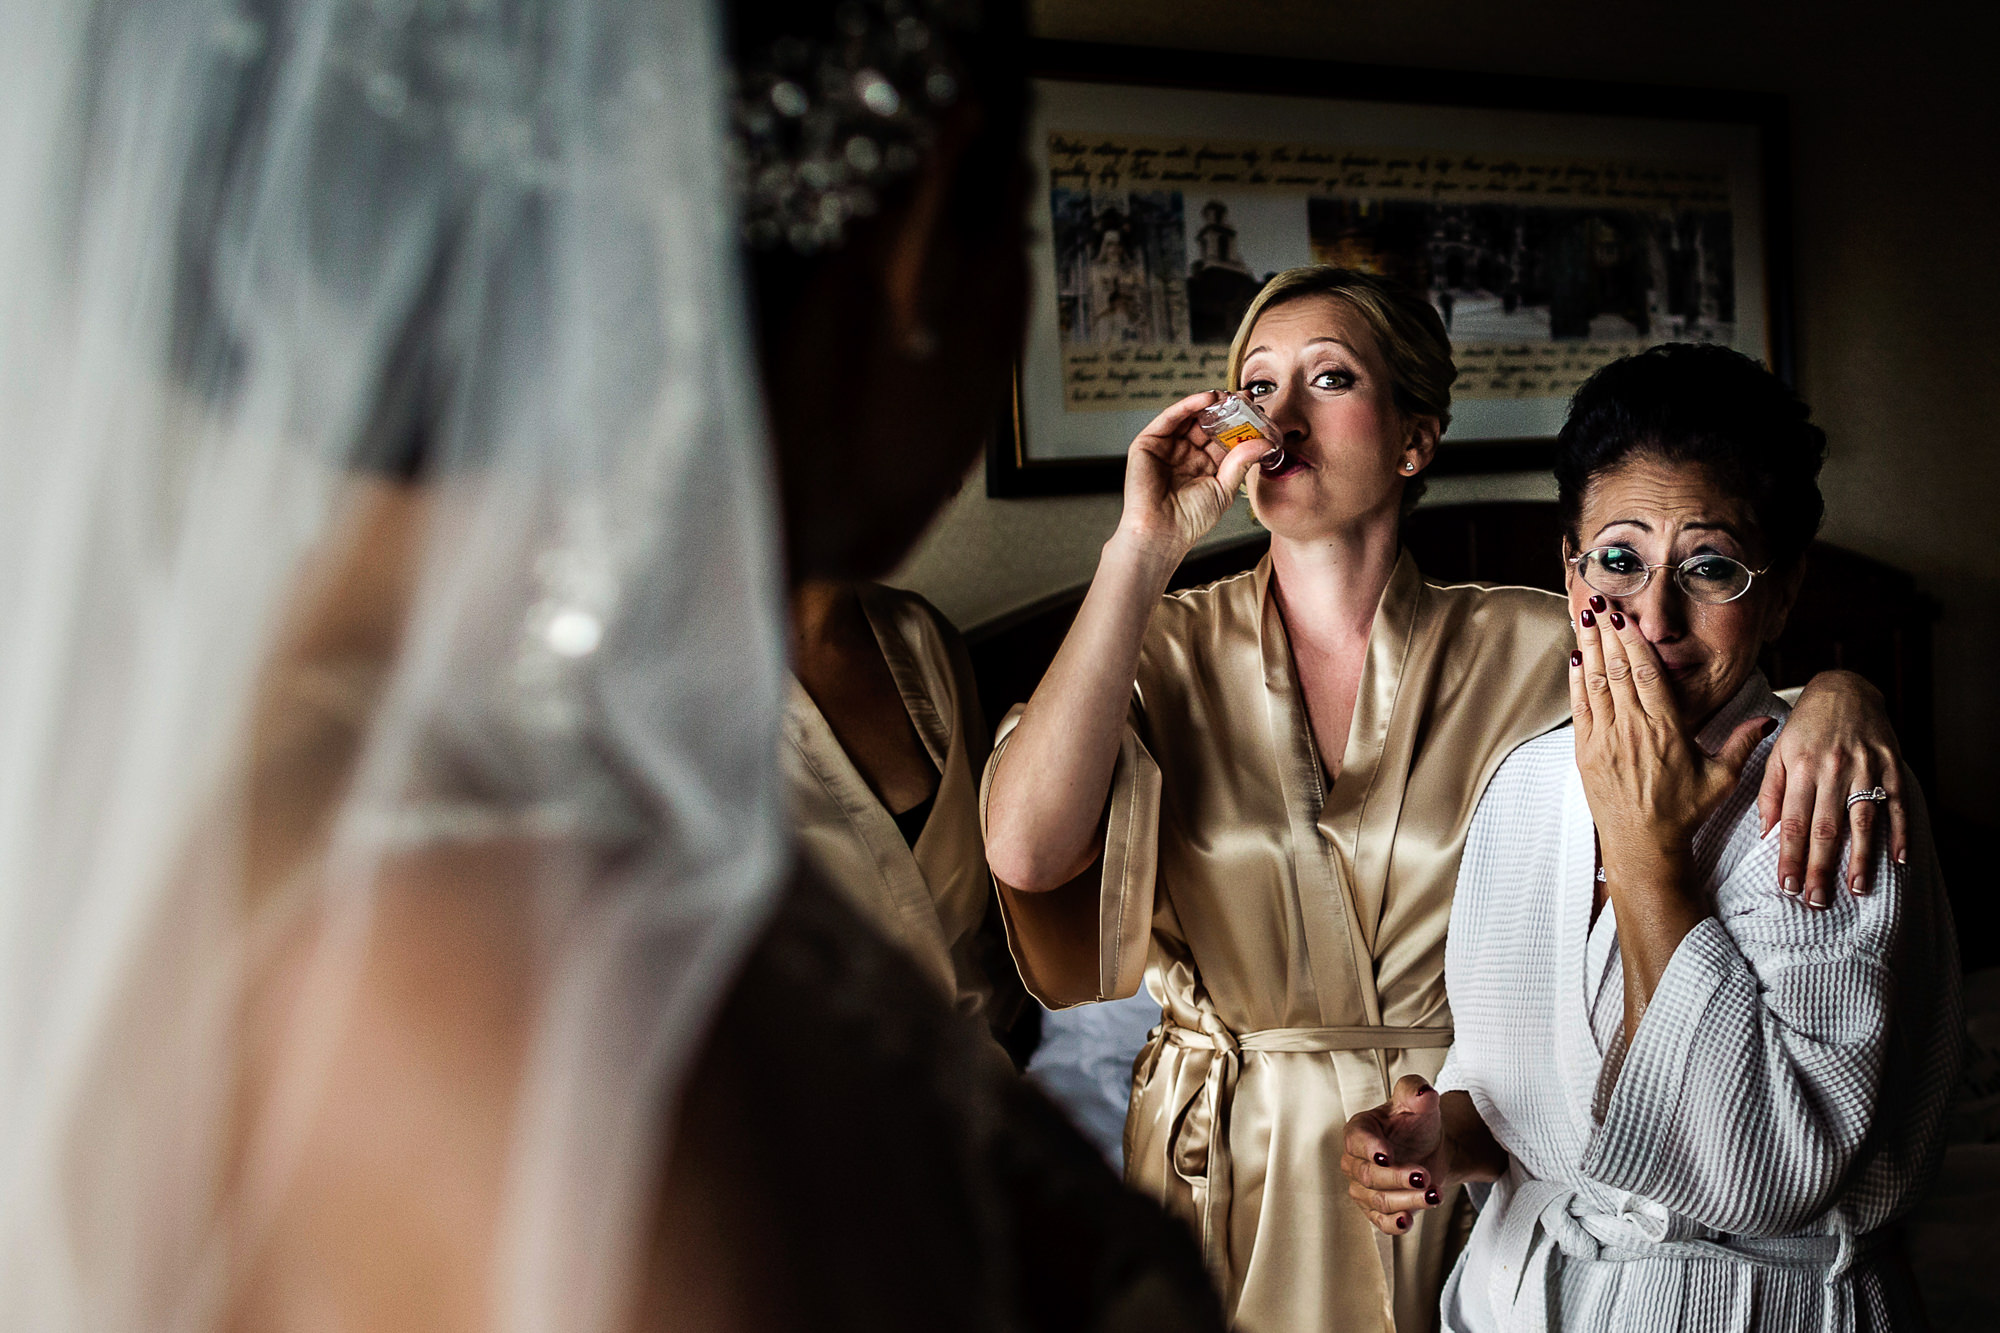 Mom and sister drinking and crying while bride gets ready - photo by Jag Studios